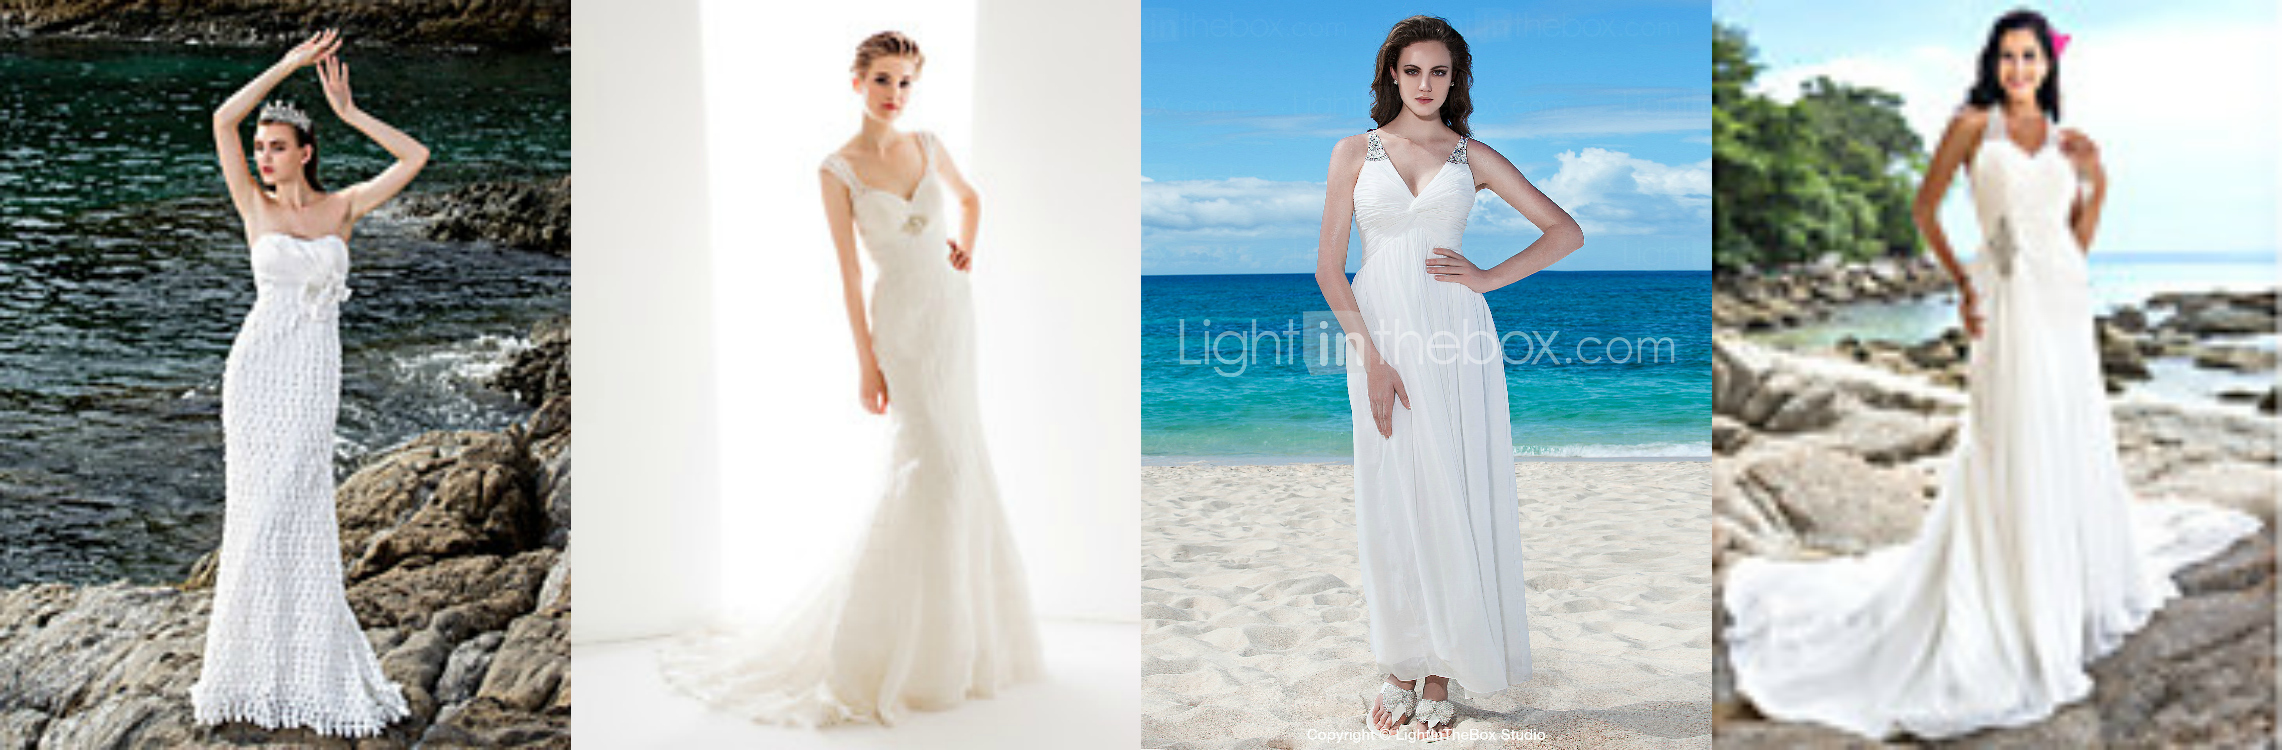 wedding dress styles for short women | Wedding